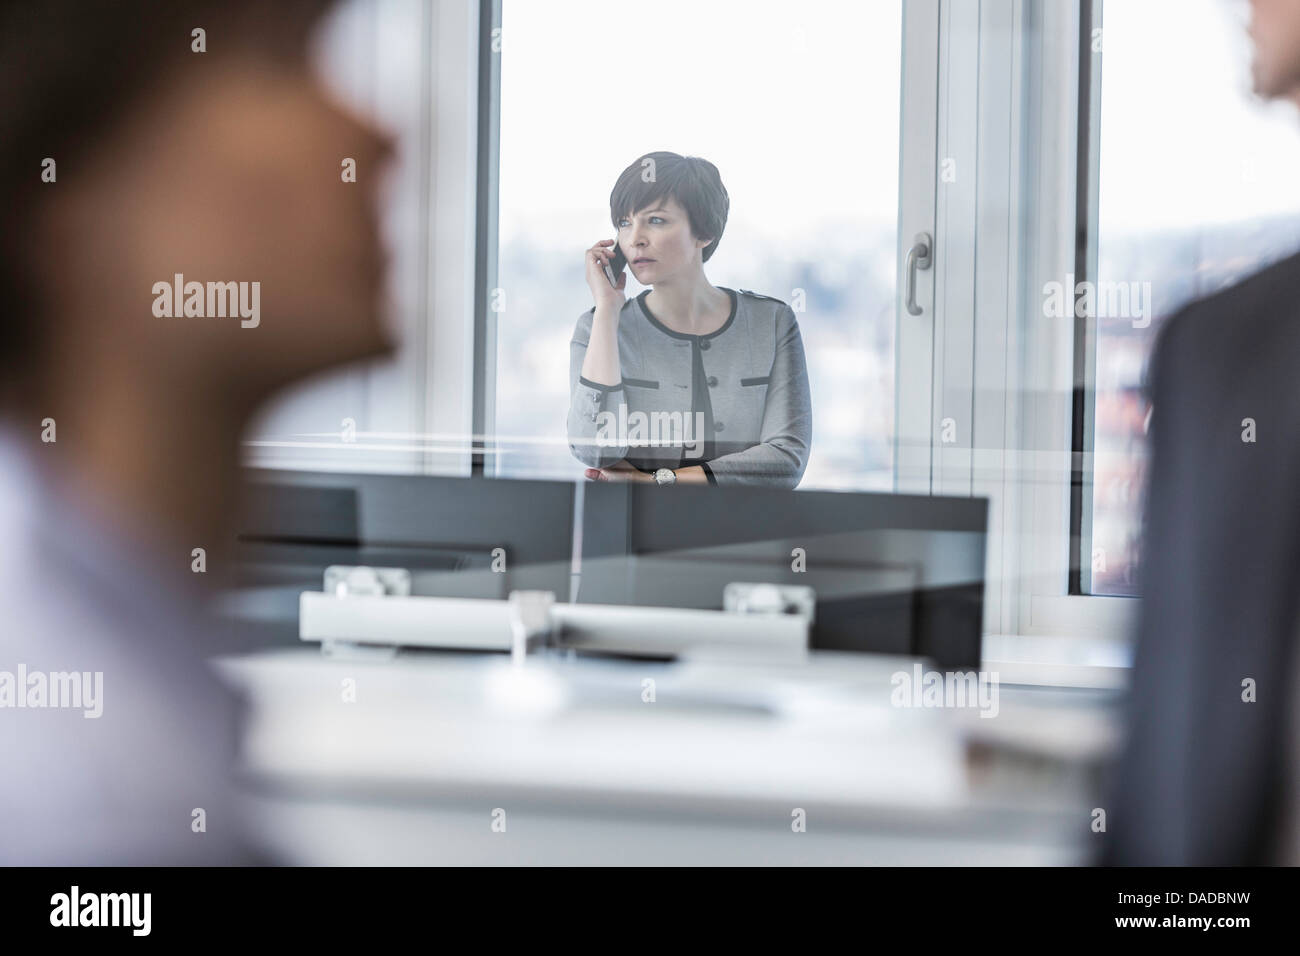 Businesswoman making telephone call - Stock Image